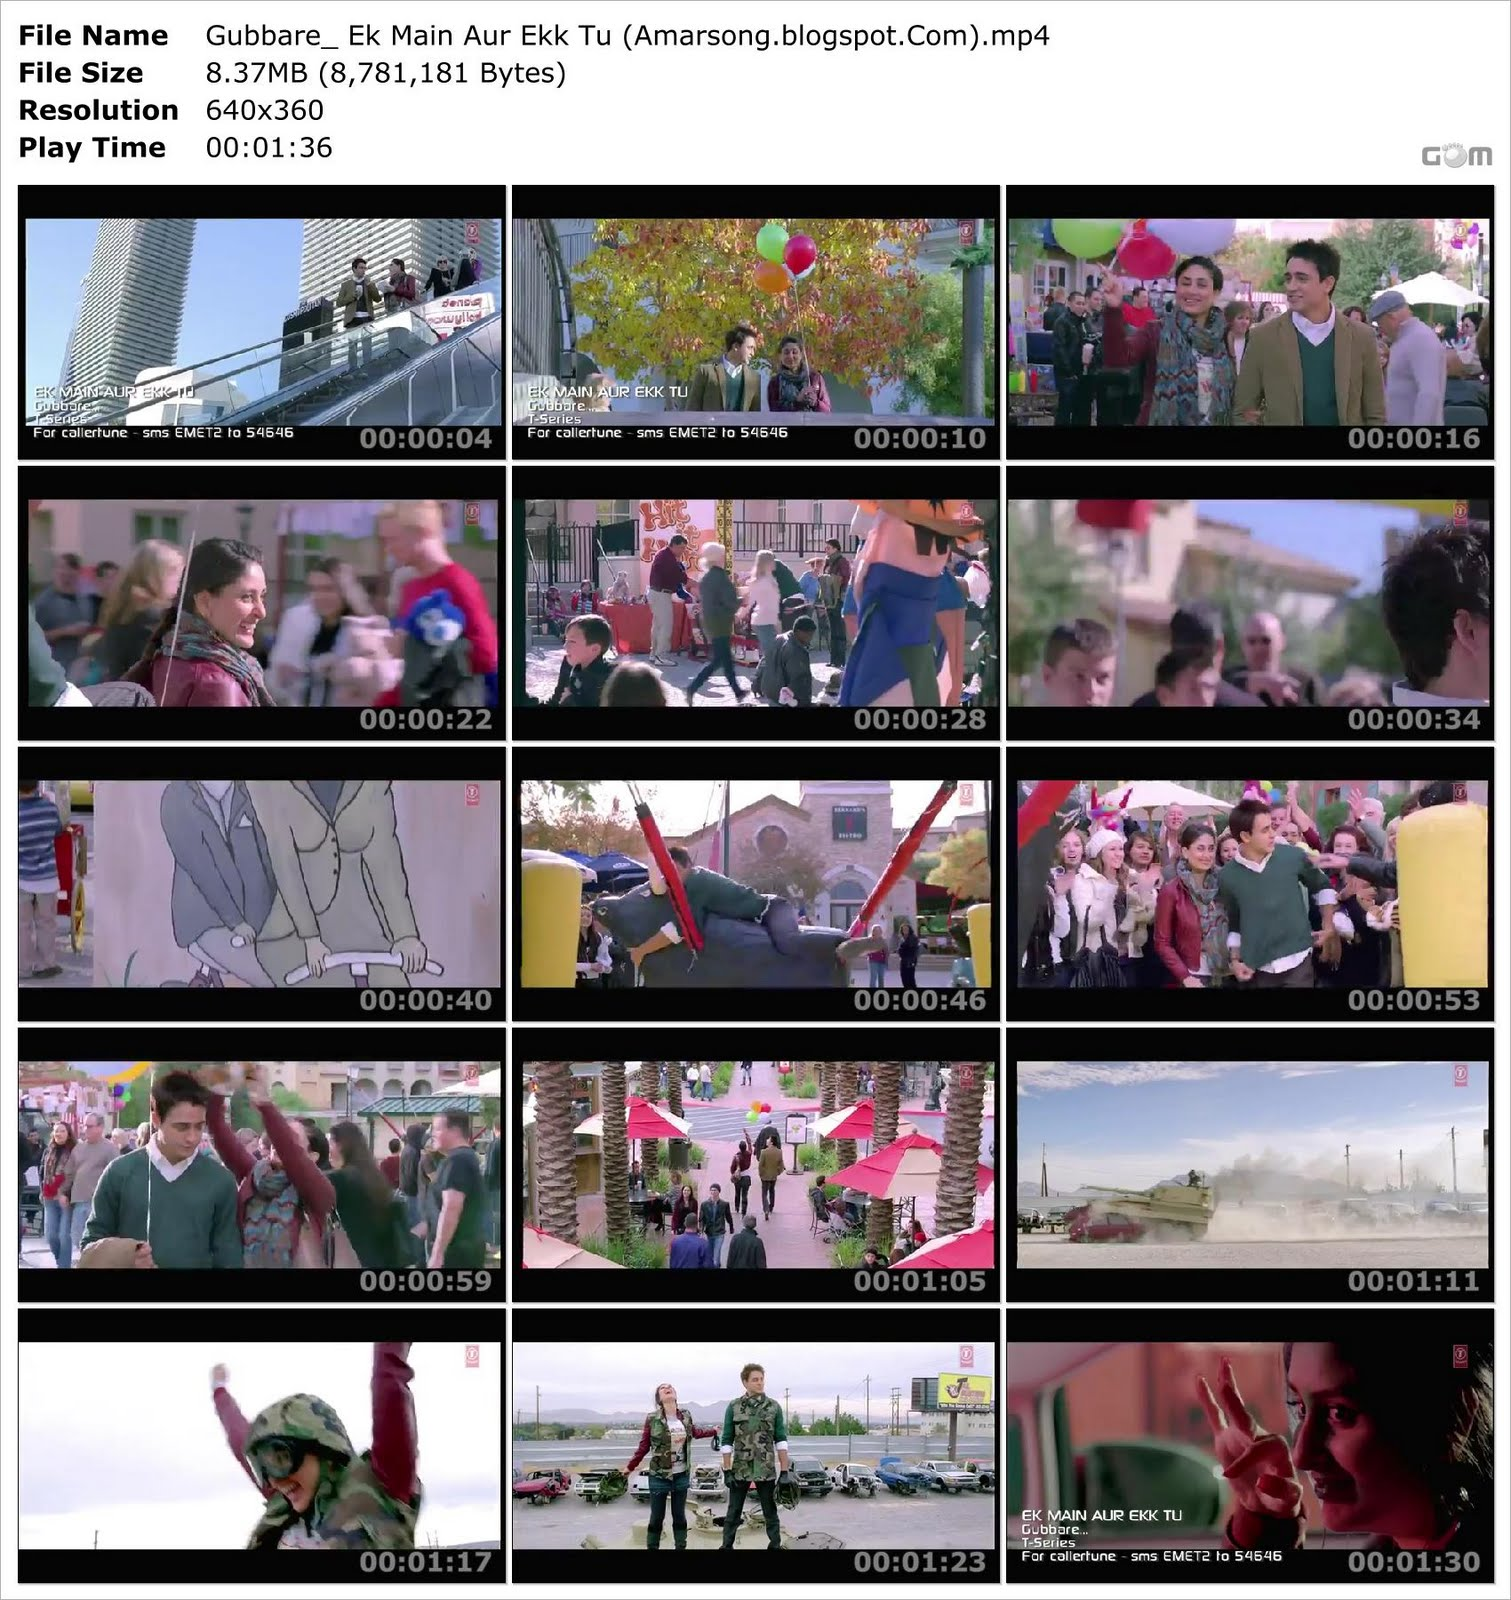 Gubbare Video Download (Ek Main Aur Ekk Tu)